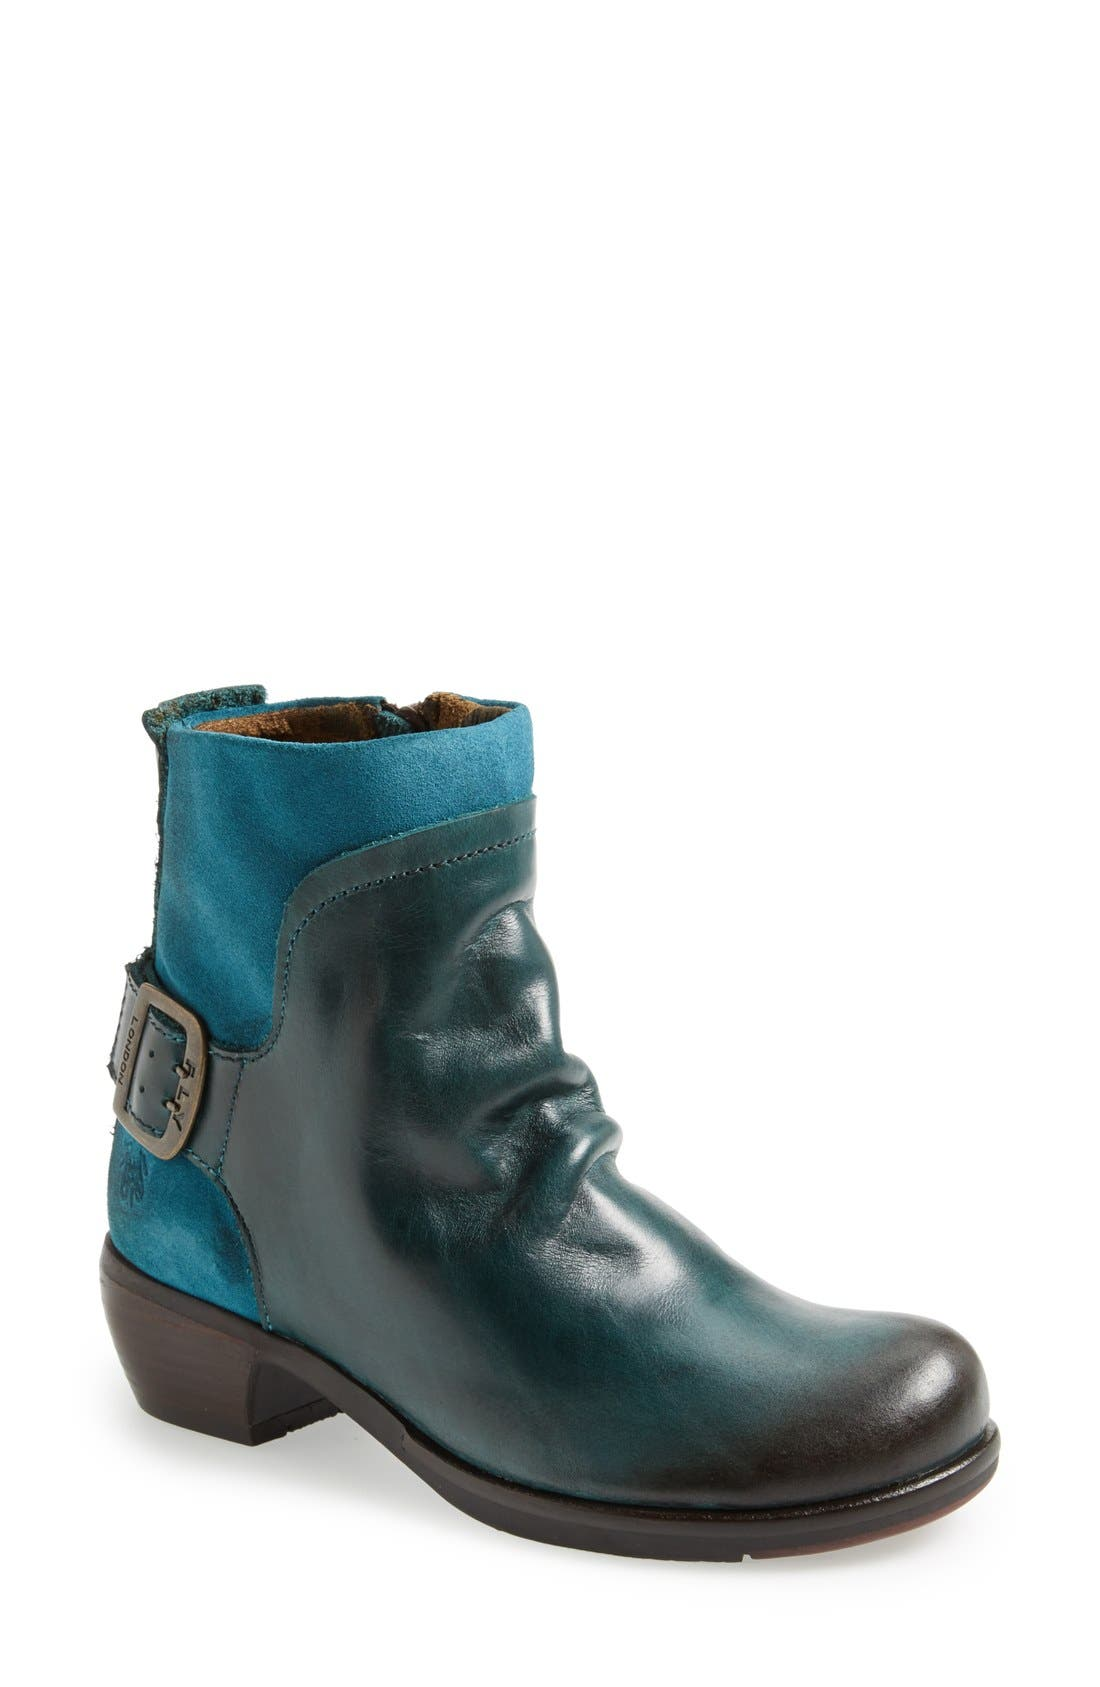 Alternate Image 1 Selected - Fly London 'Mel' Leather Bootie (Women)